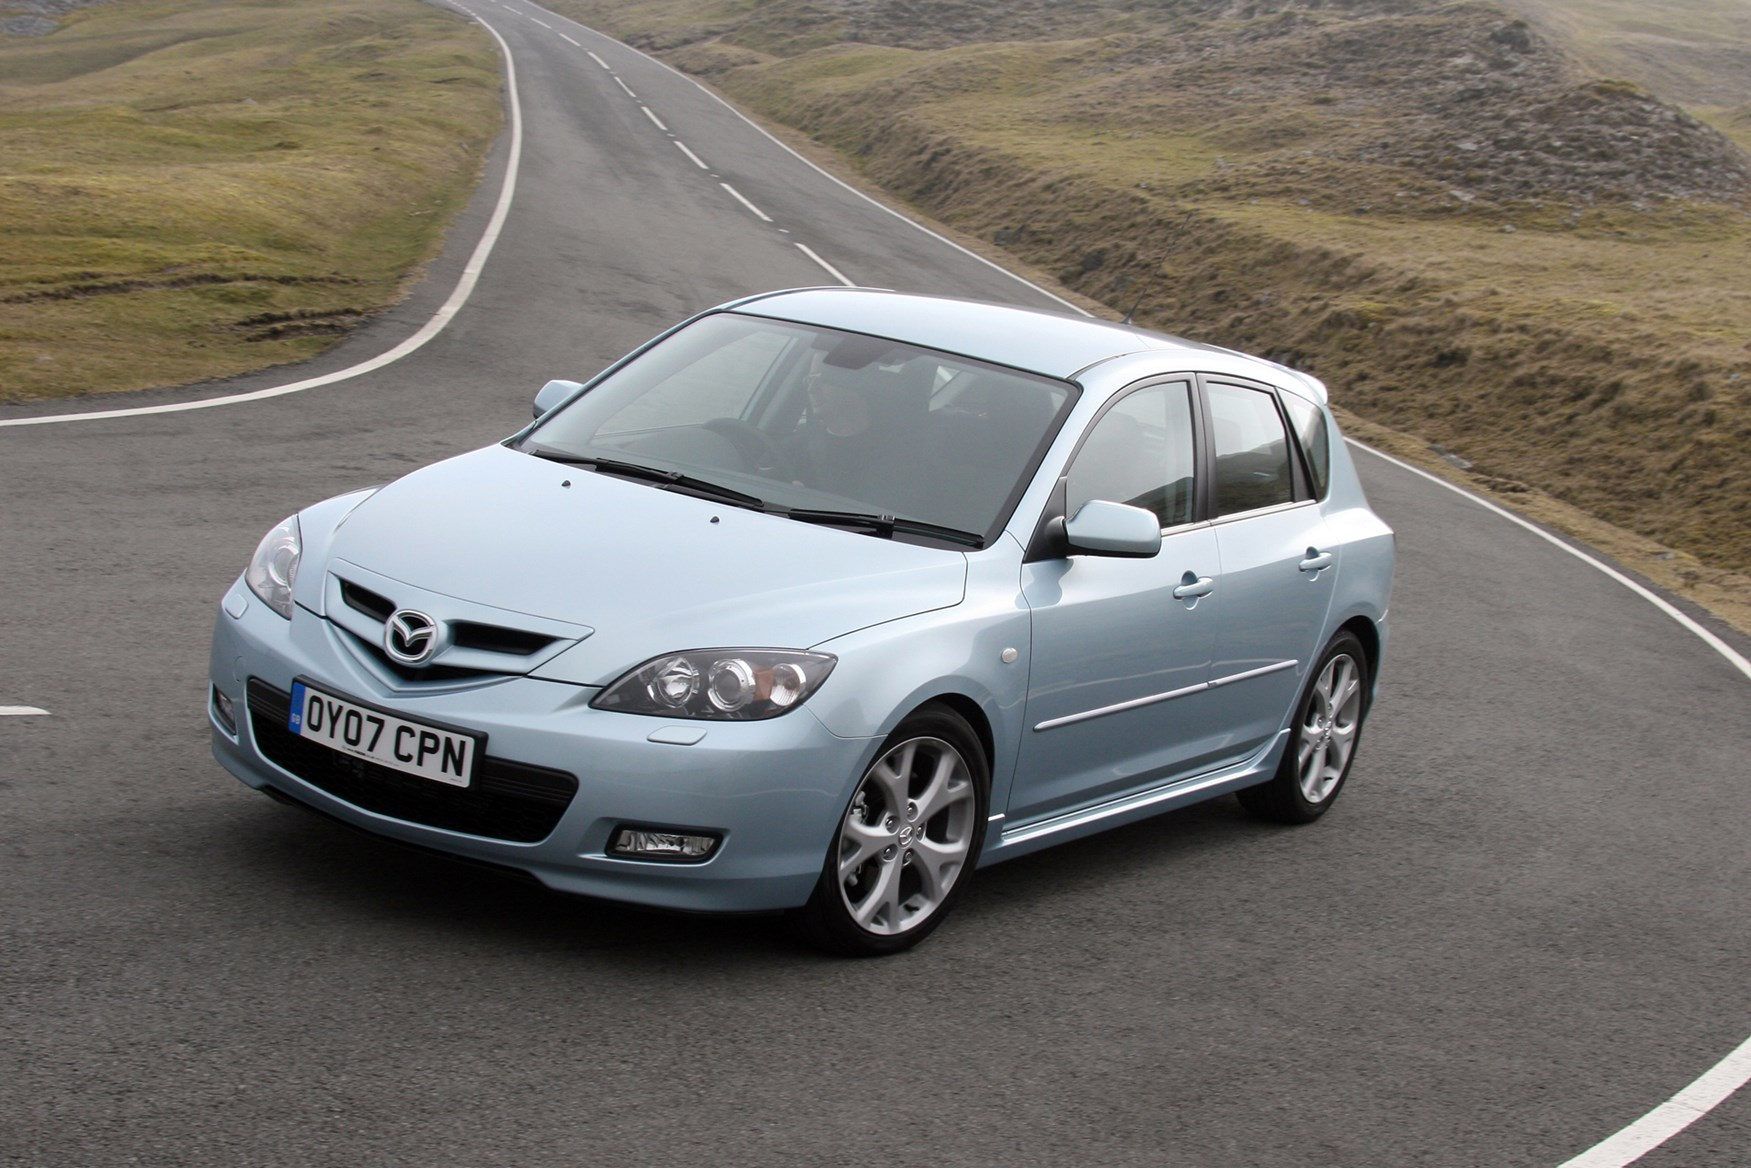 View all images of the mazda 3 hatchback 04 08